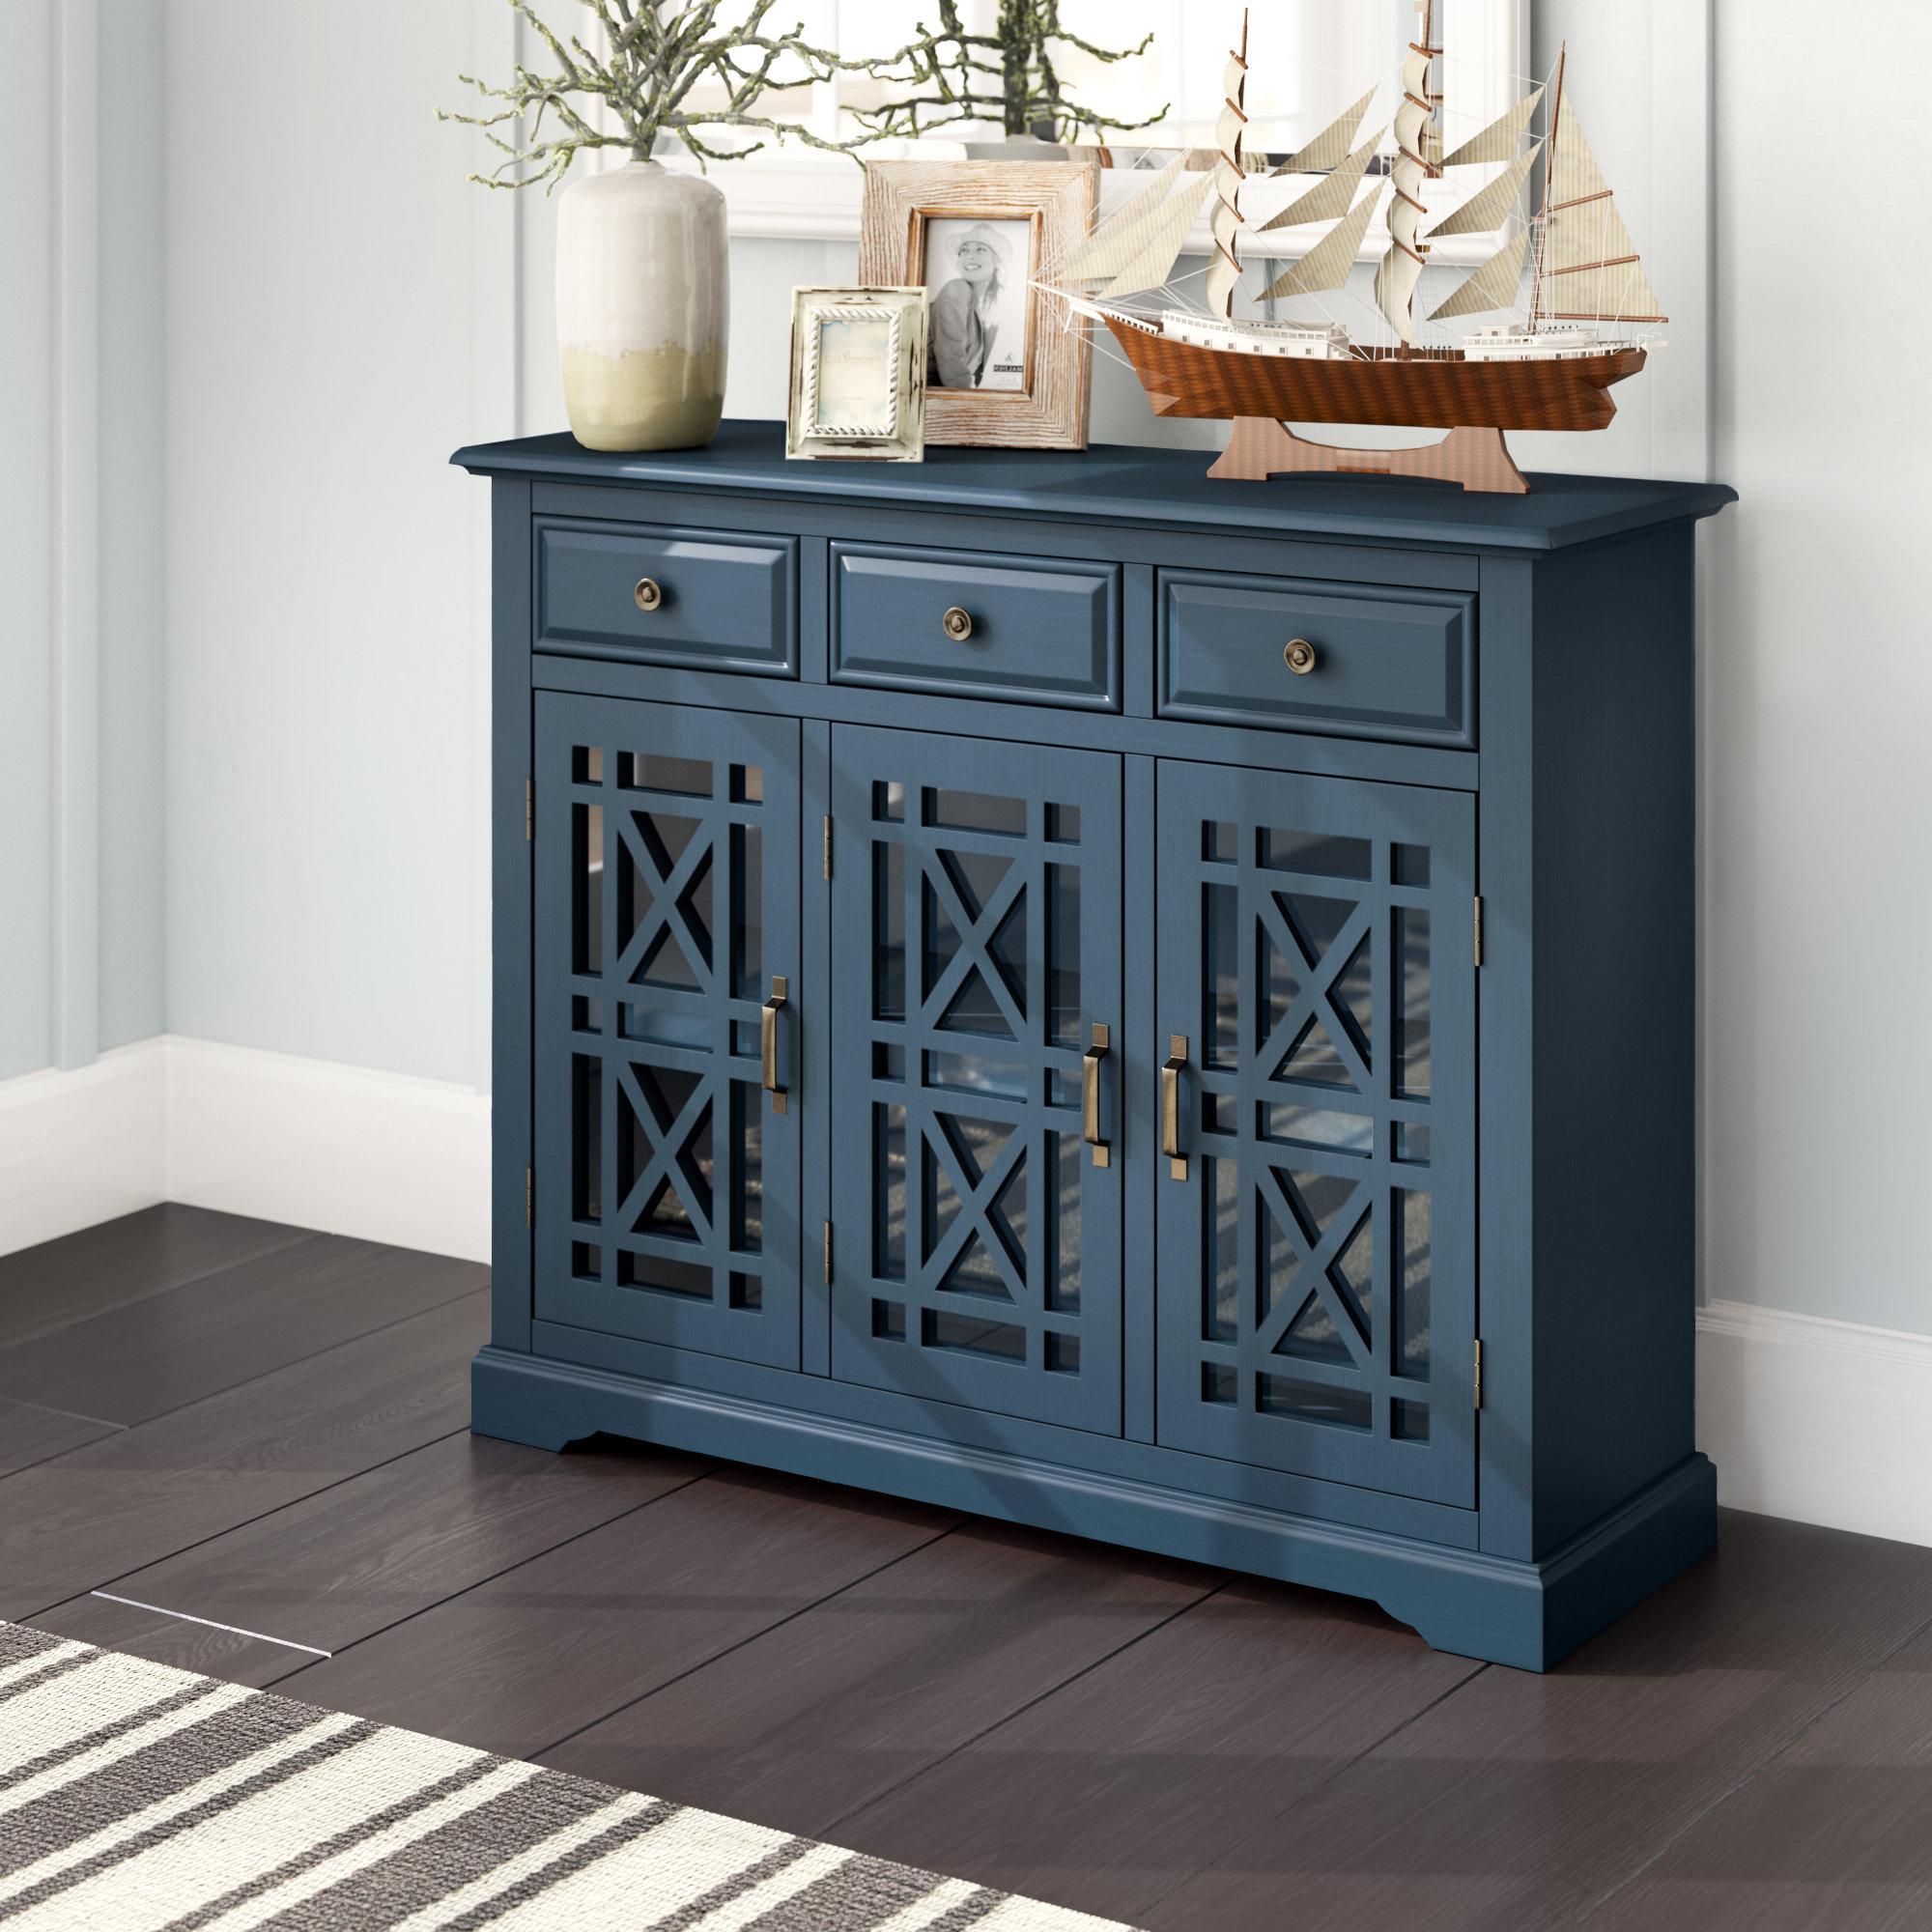 Breakwater Bay Winston Sideboard & Reviews | Wayfair With Most Recent Mauldin Sideboards (View 18 of 20)